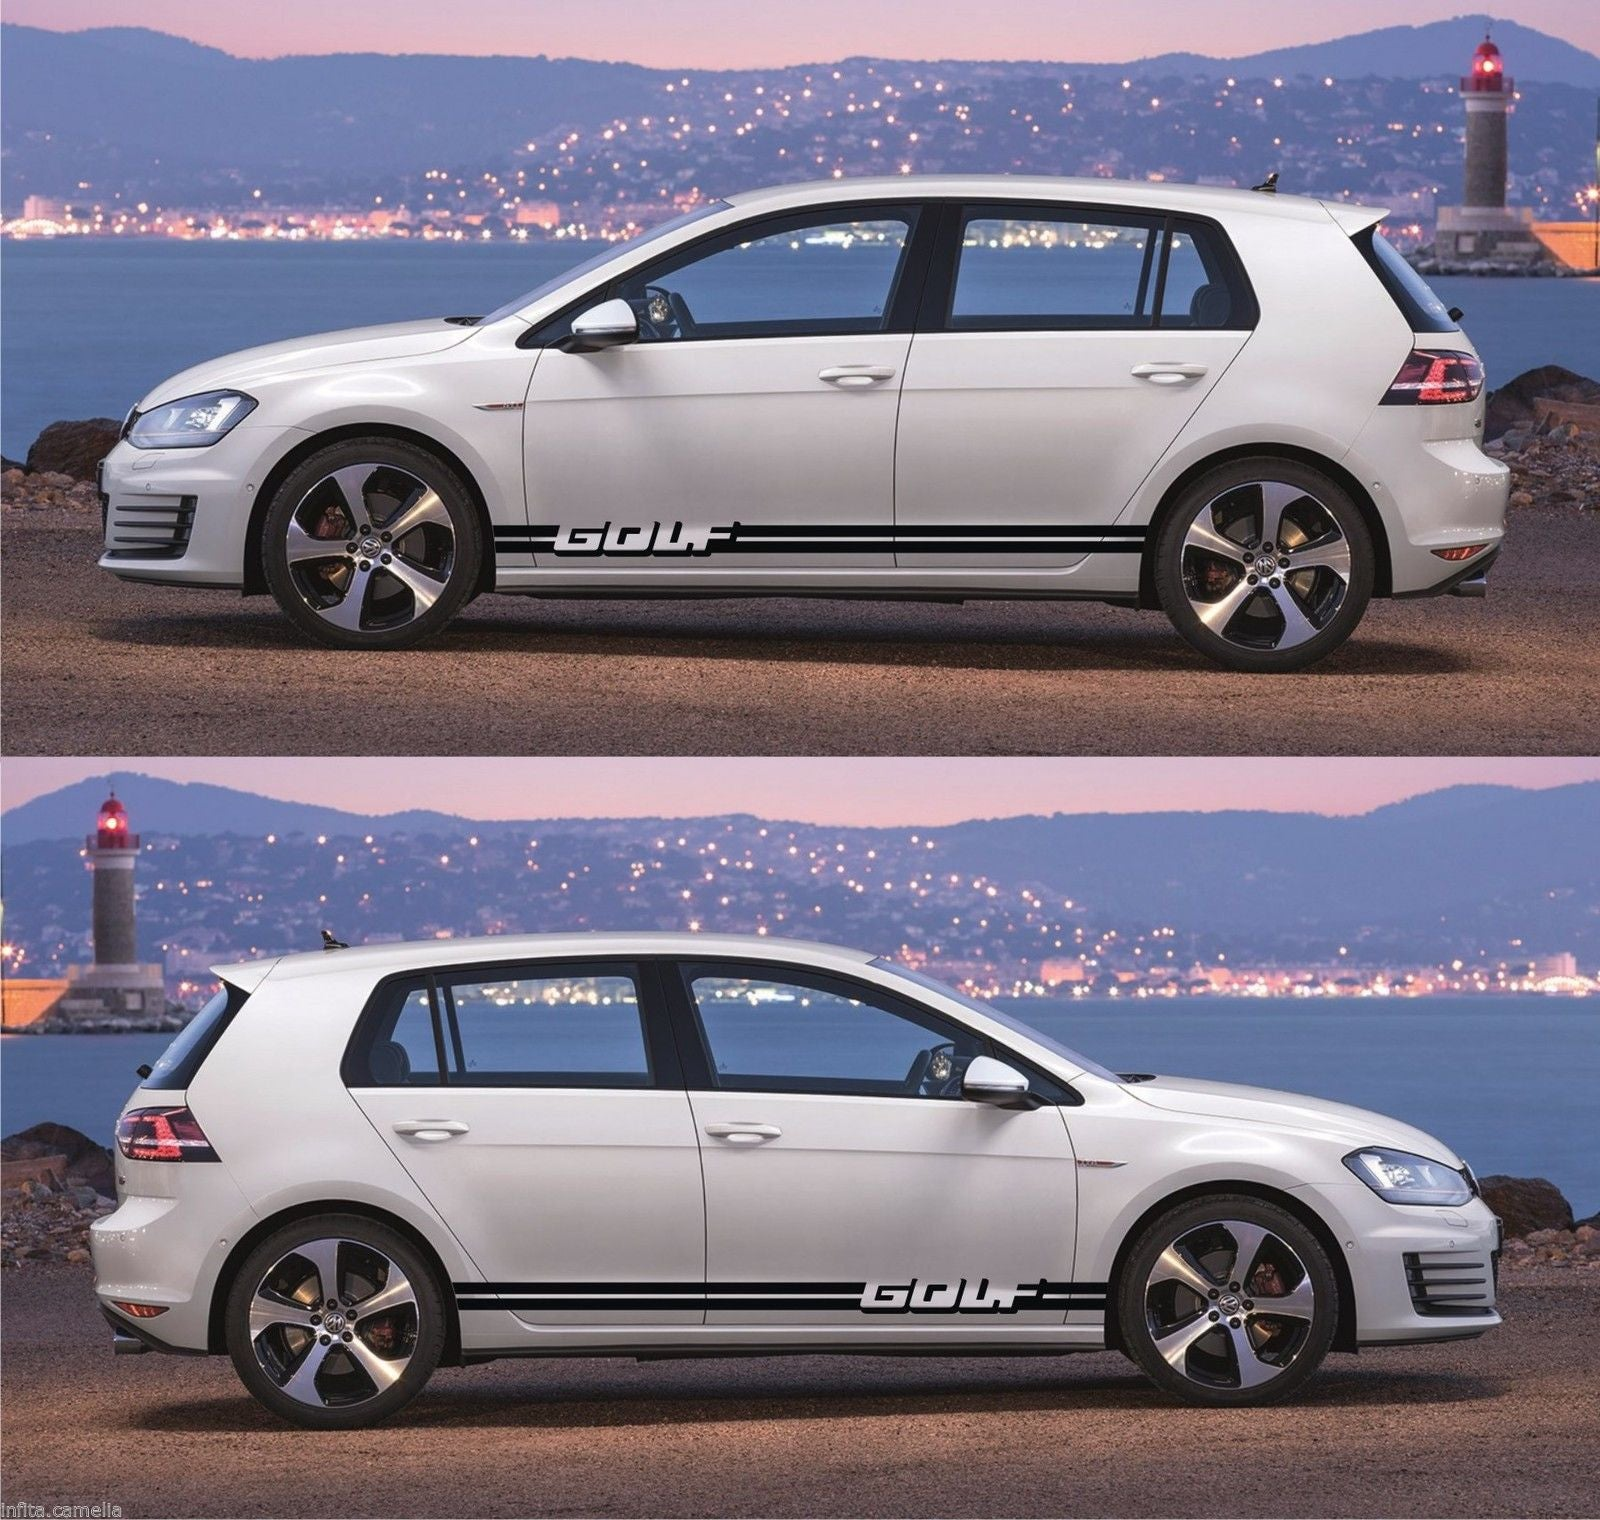 Vw stickers volkswagen golf mk 1 2 3 iv v car side racing stripes kit decals turbo drift lower speedhunters infinity270